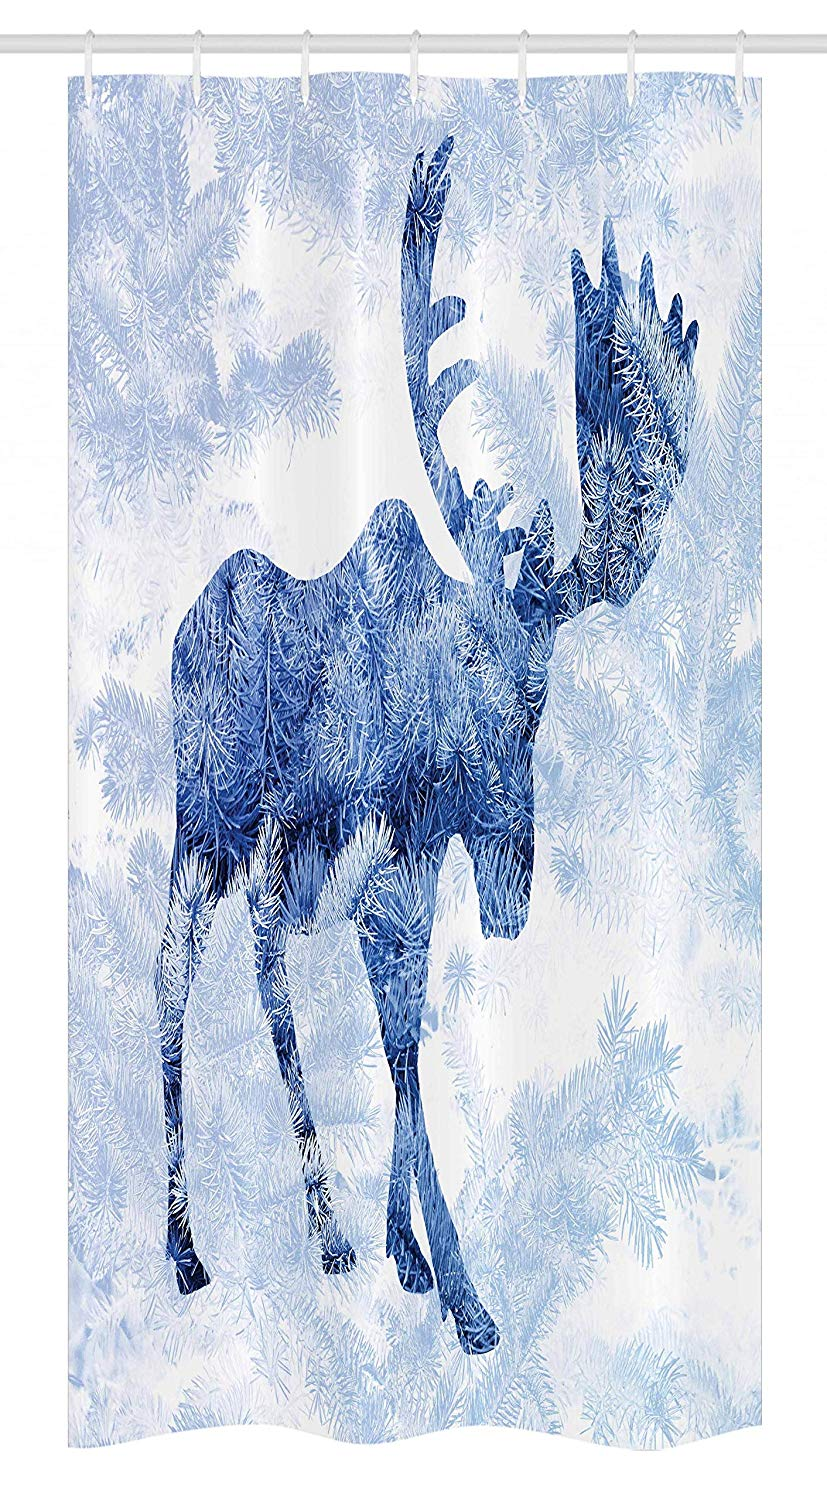 Ambesonne Moose Stall Shower Curtain, Blue Pattern Pine Needles Spruce Tree with Antlers Deer Family Snow Winter Horns, Fabric Bathroom Decor Set with Hooks, 36